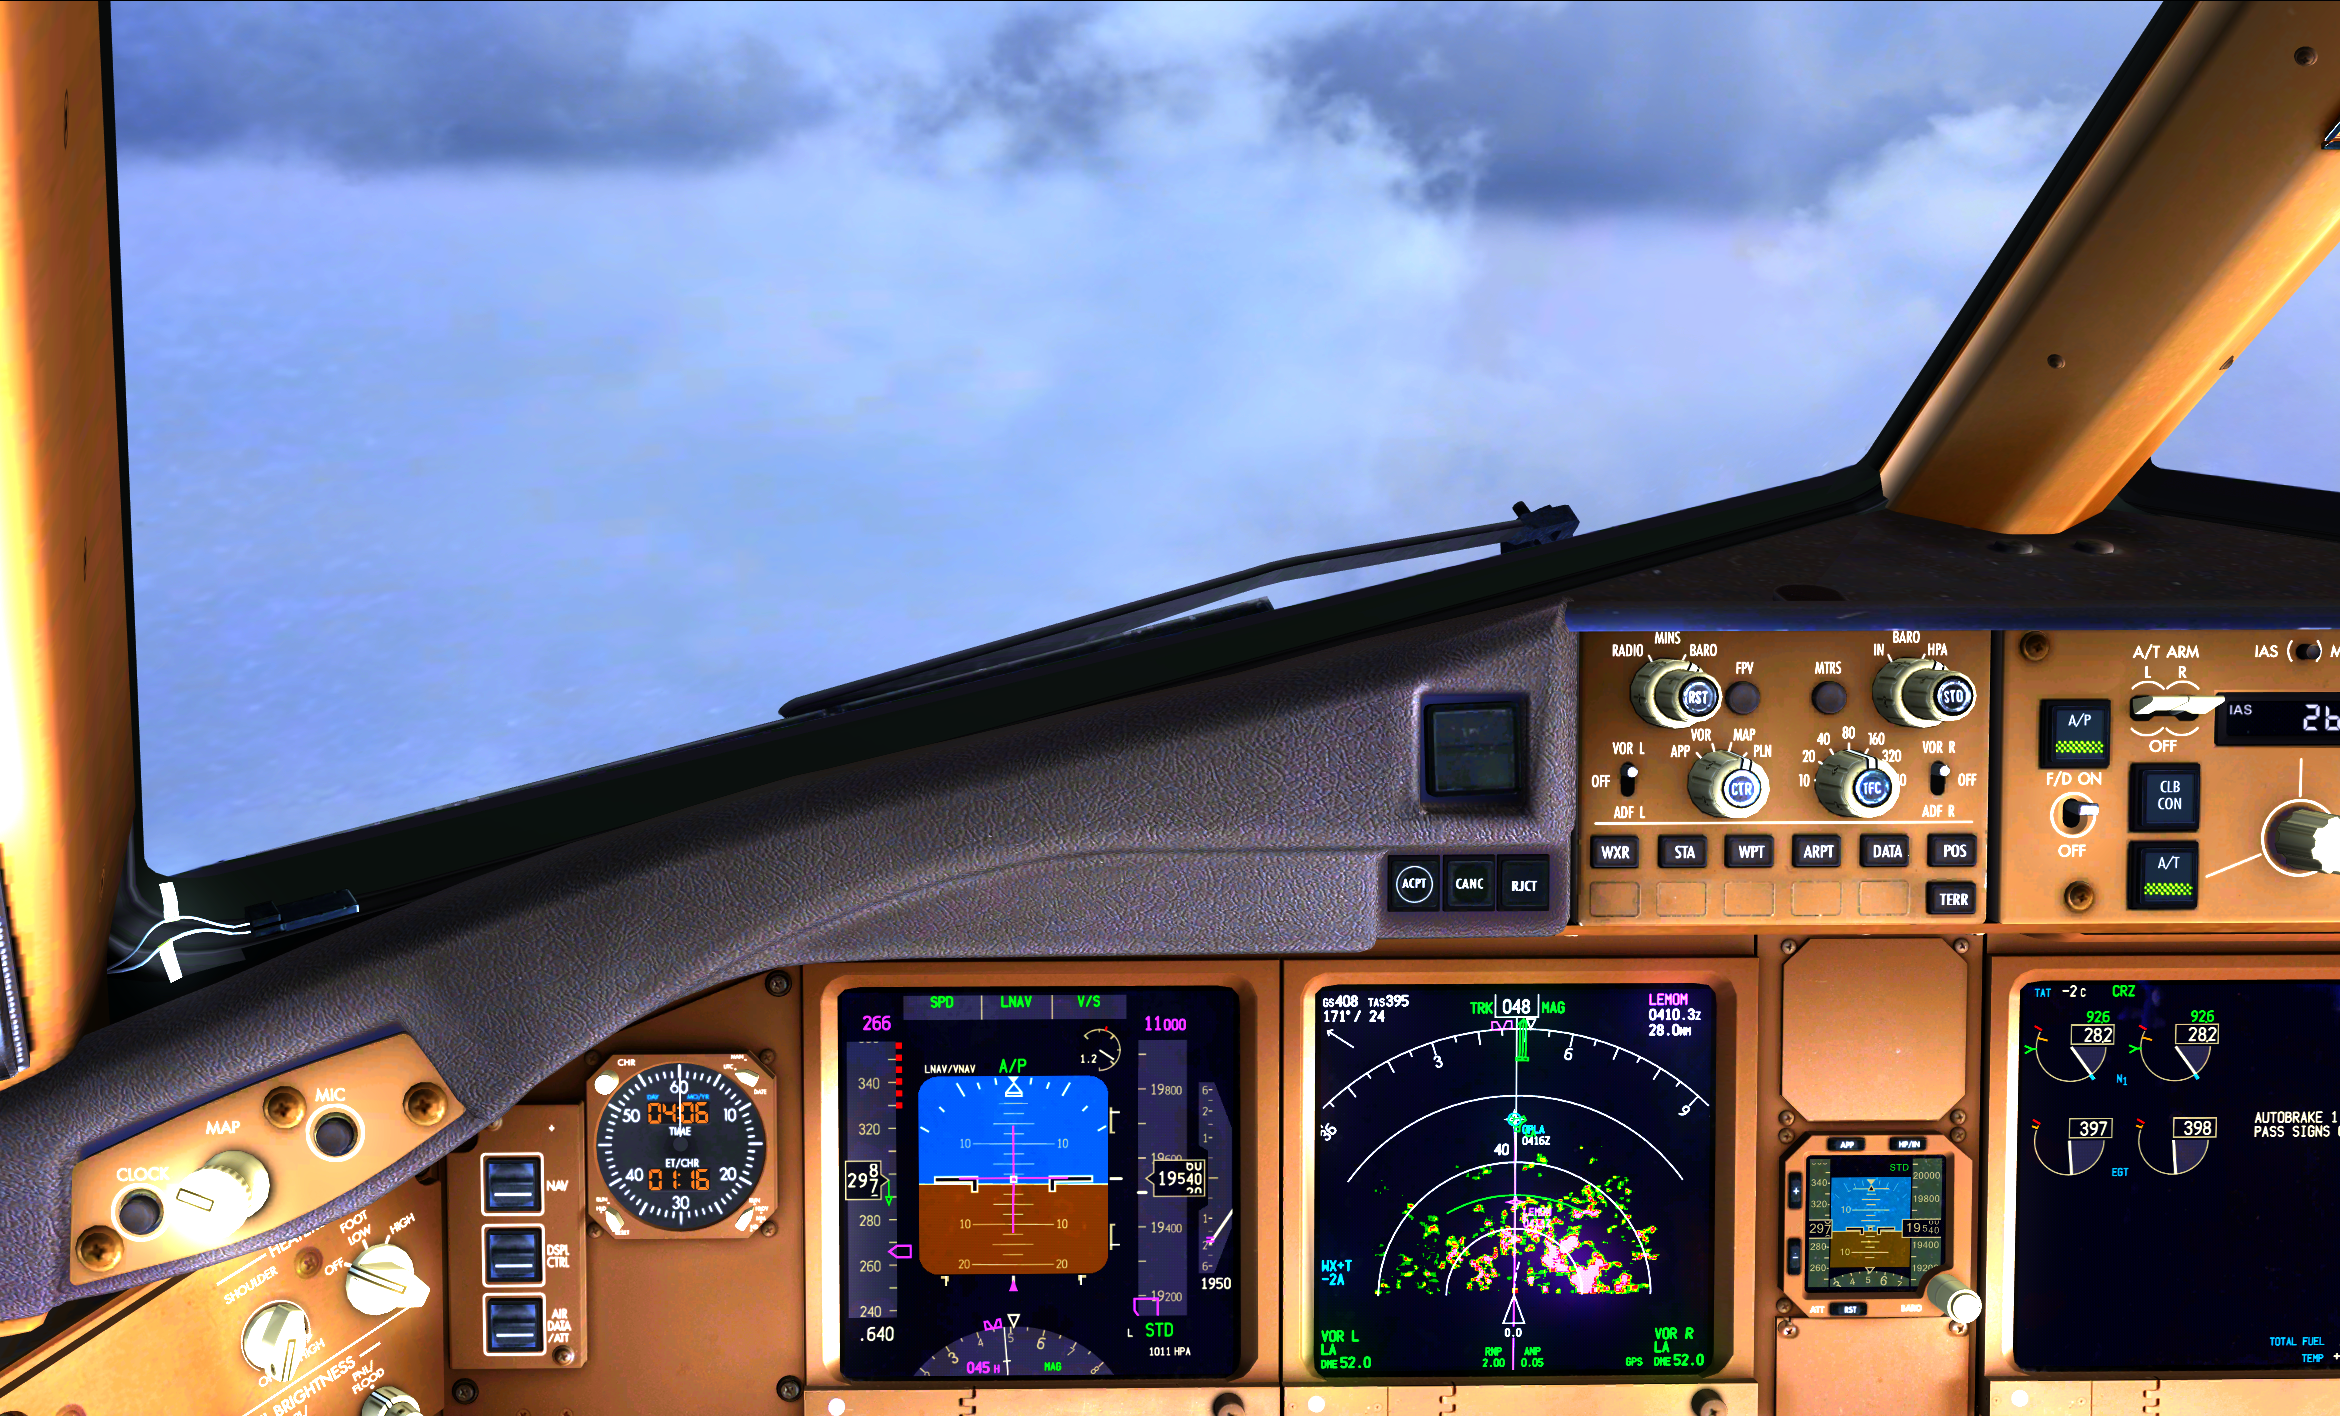 fsx%202015-03-15%2013-11-49-01.png?dl=0